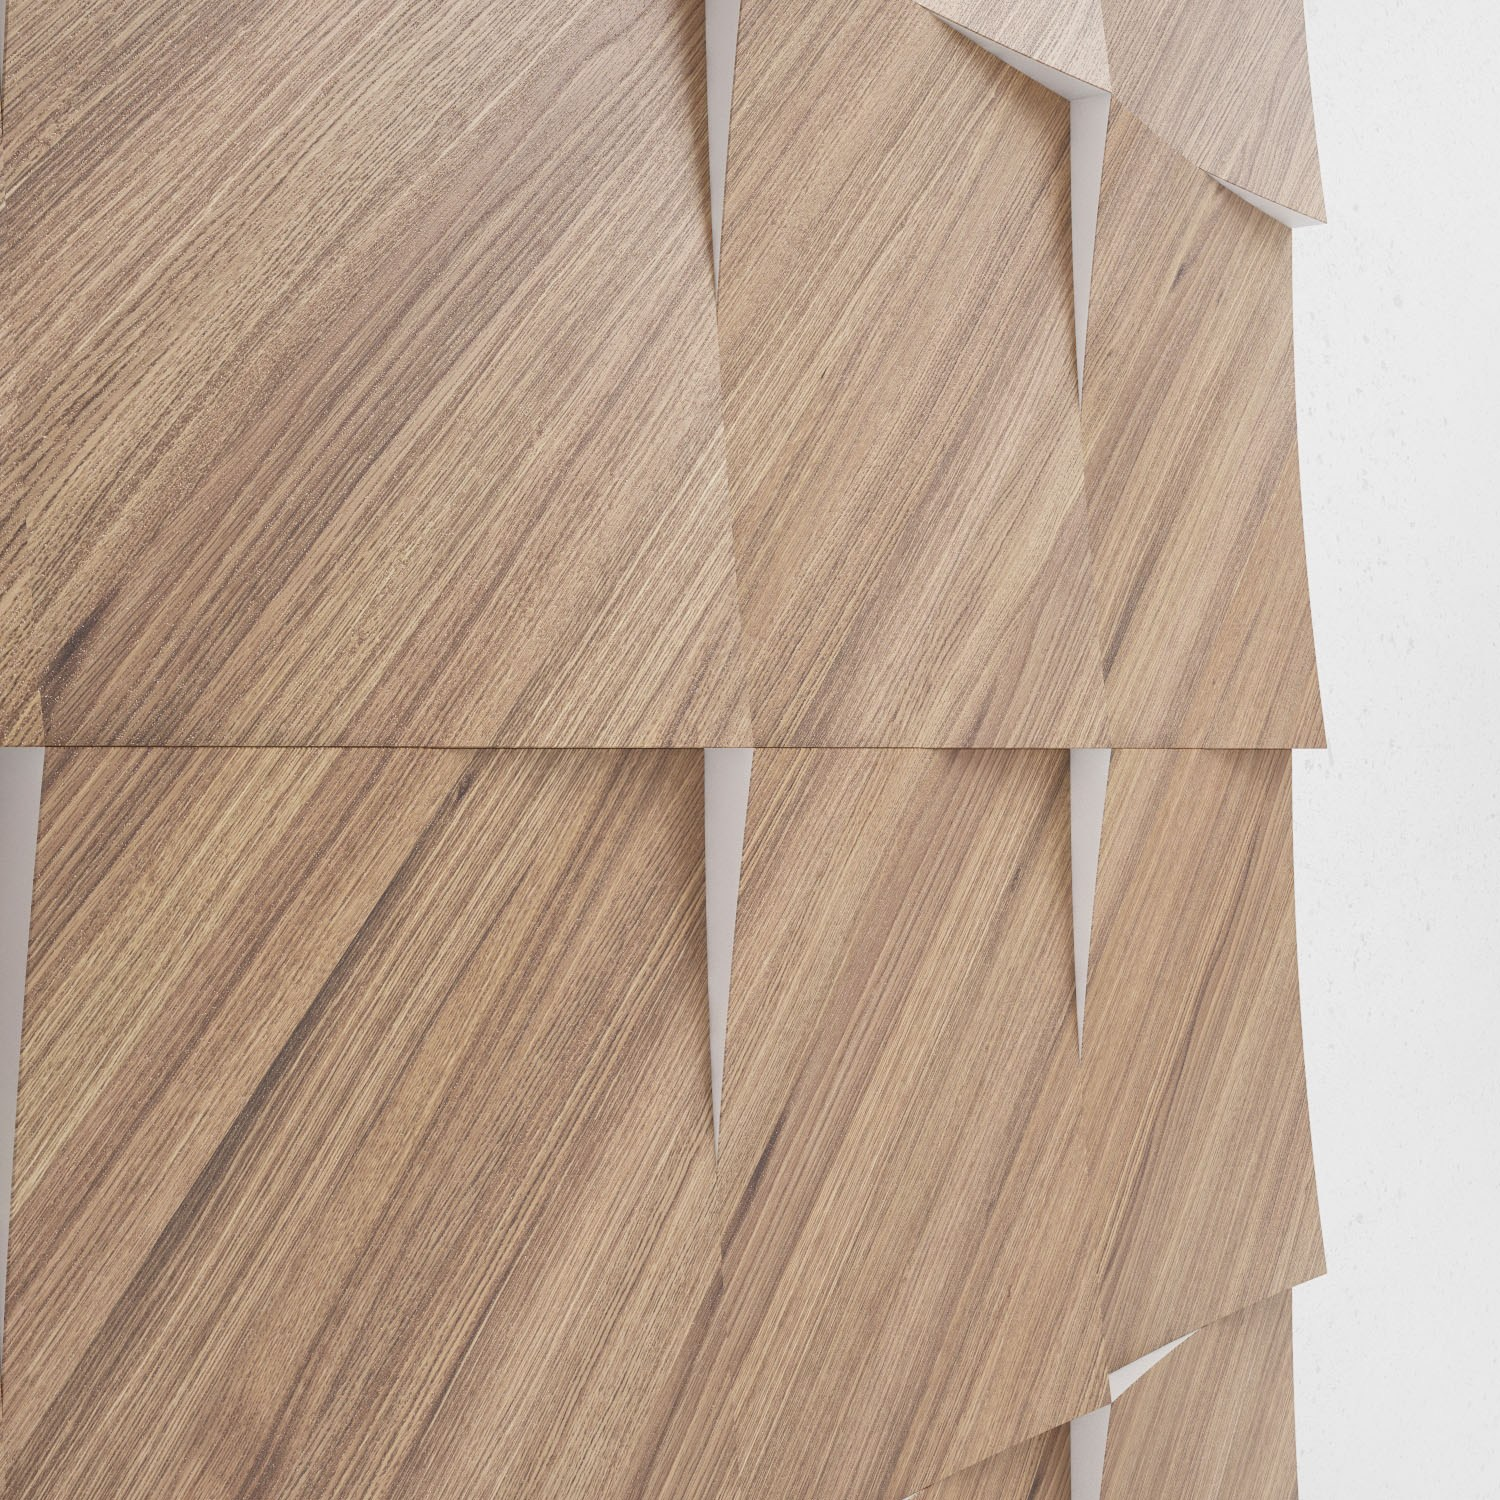 Veneer Wood Products ~ Wood veneer decorative panel p collection by odesd